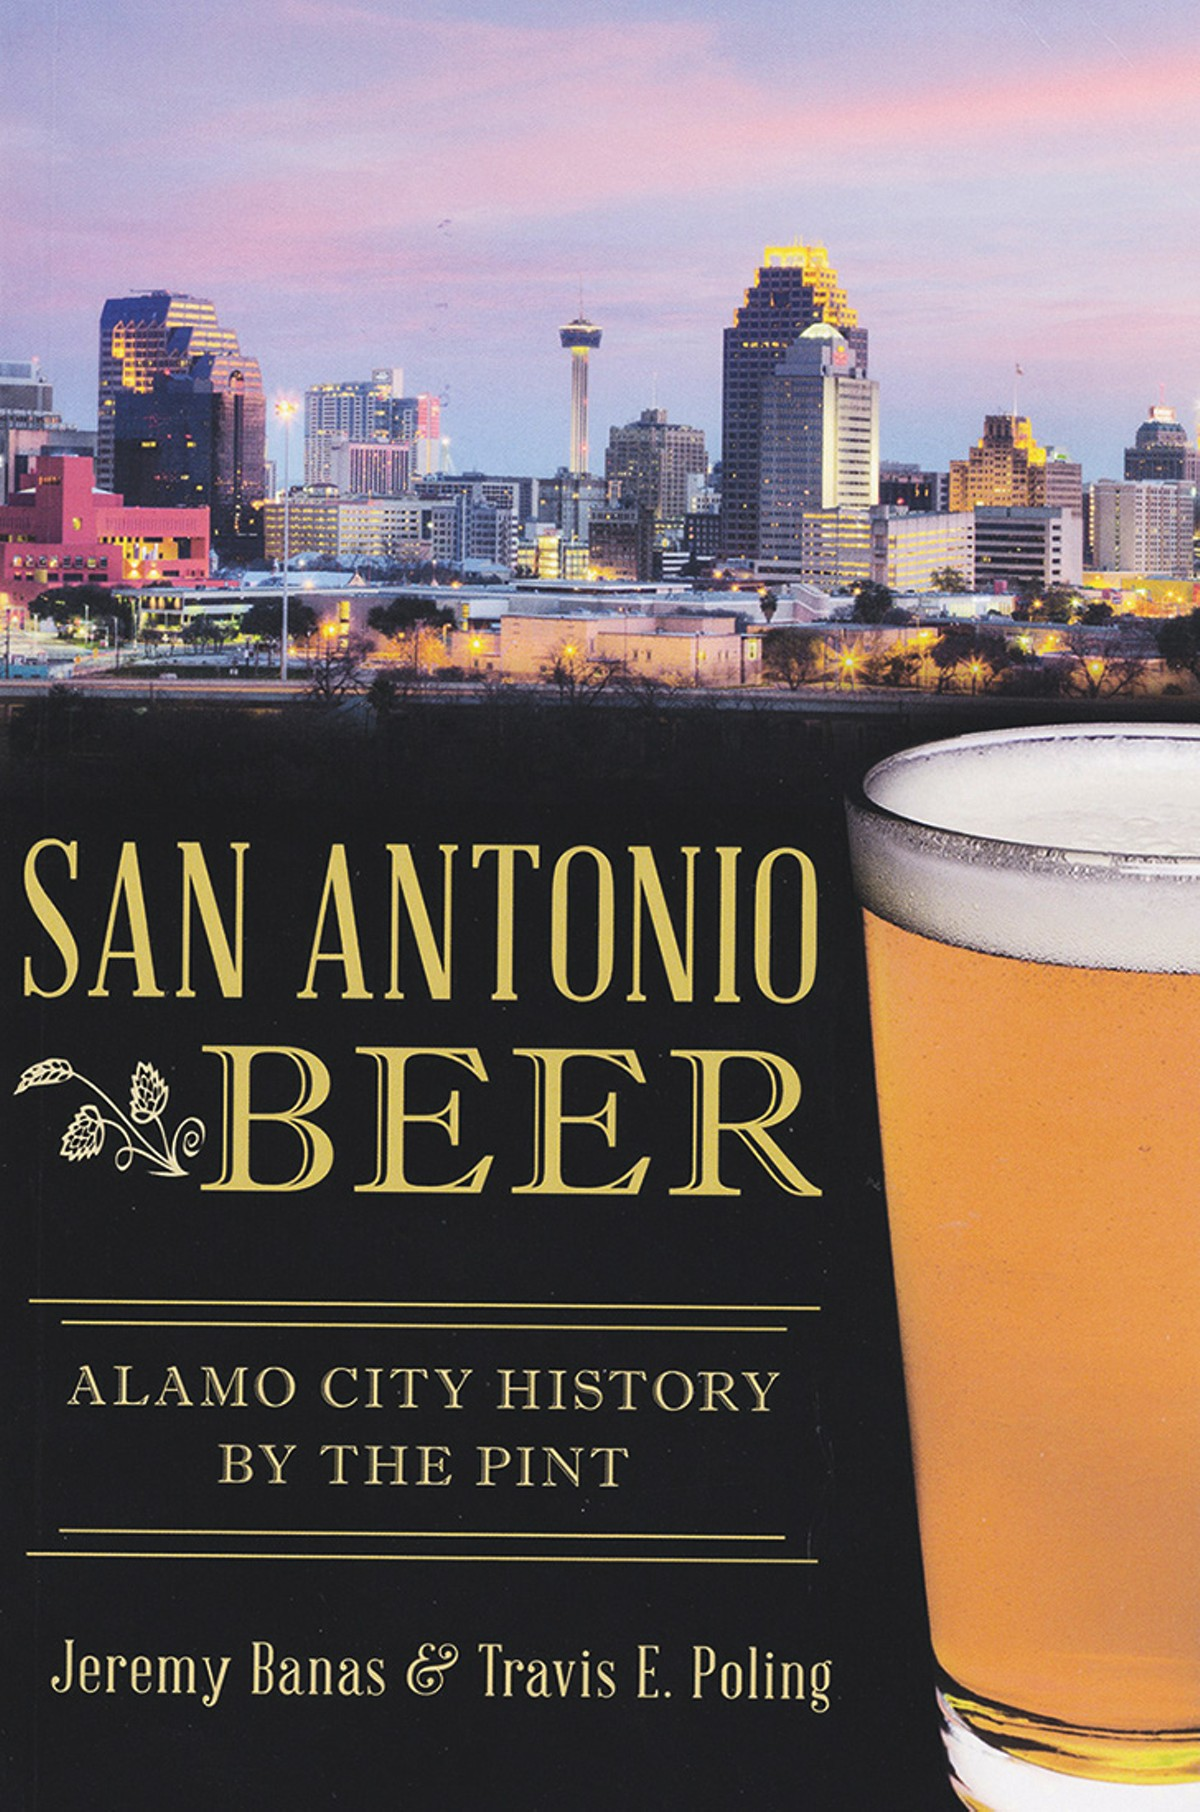 A concise look at SA's nutty brew history.